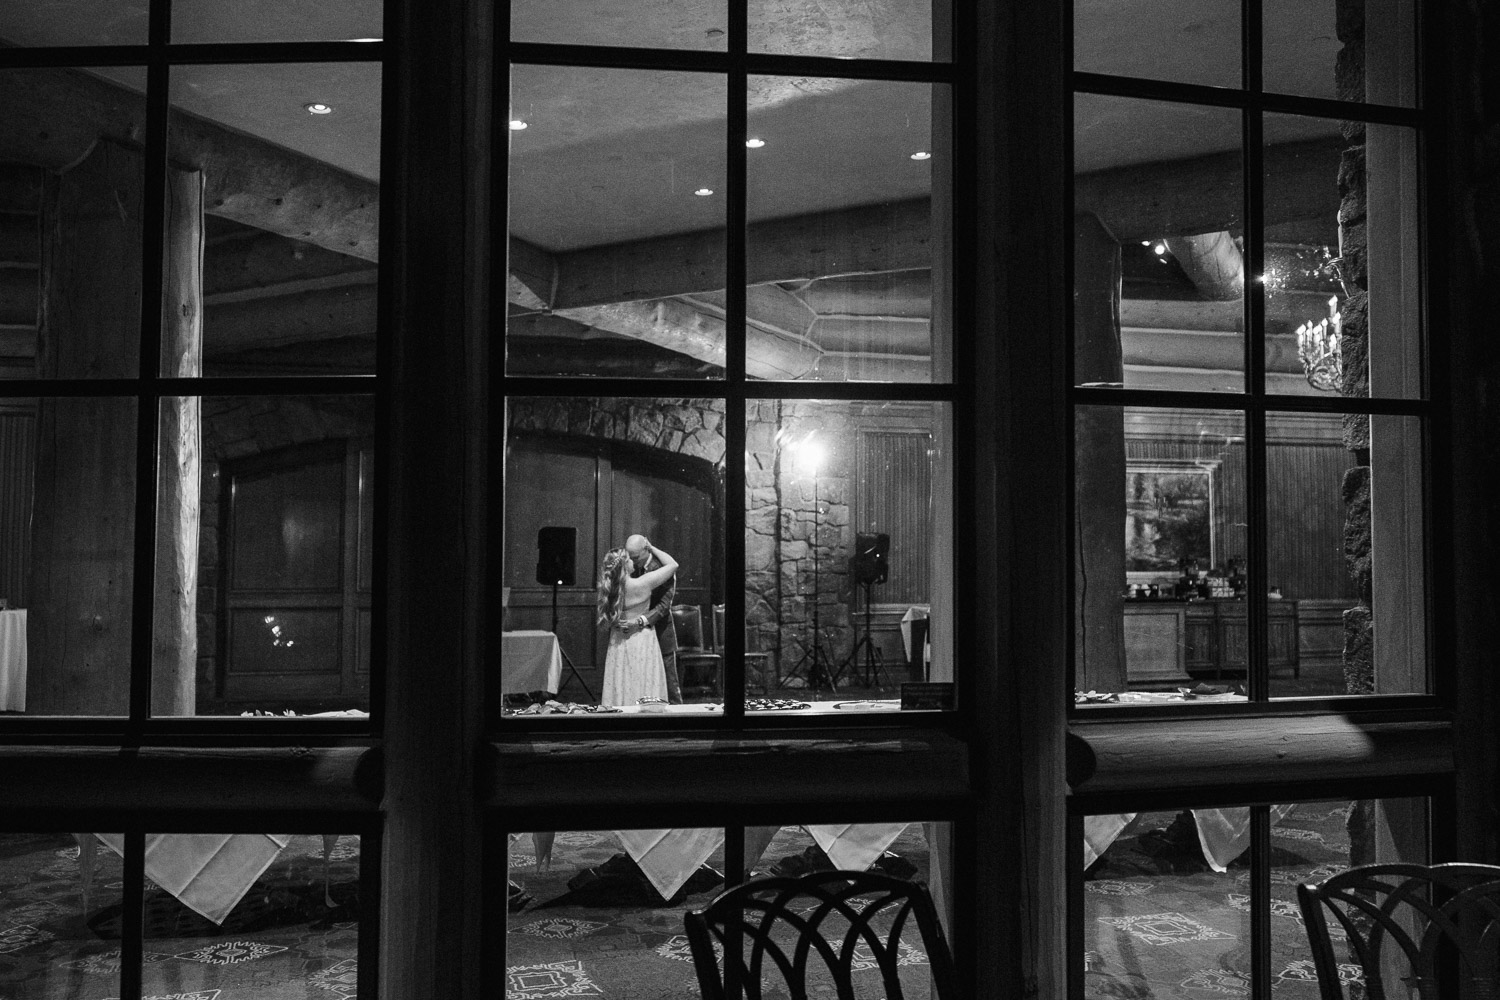 bride and groom dancing through window snowbasin resort